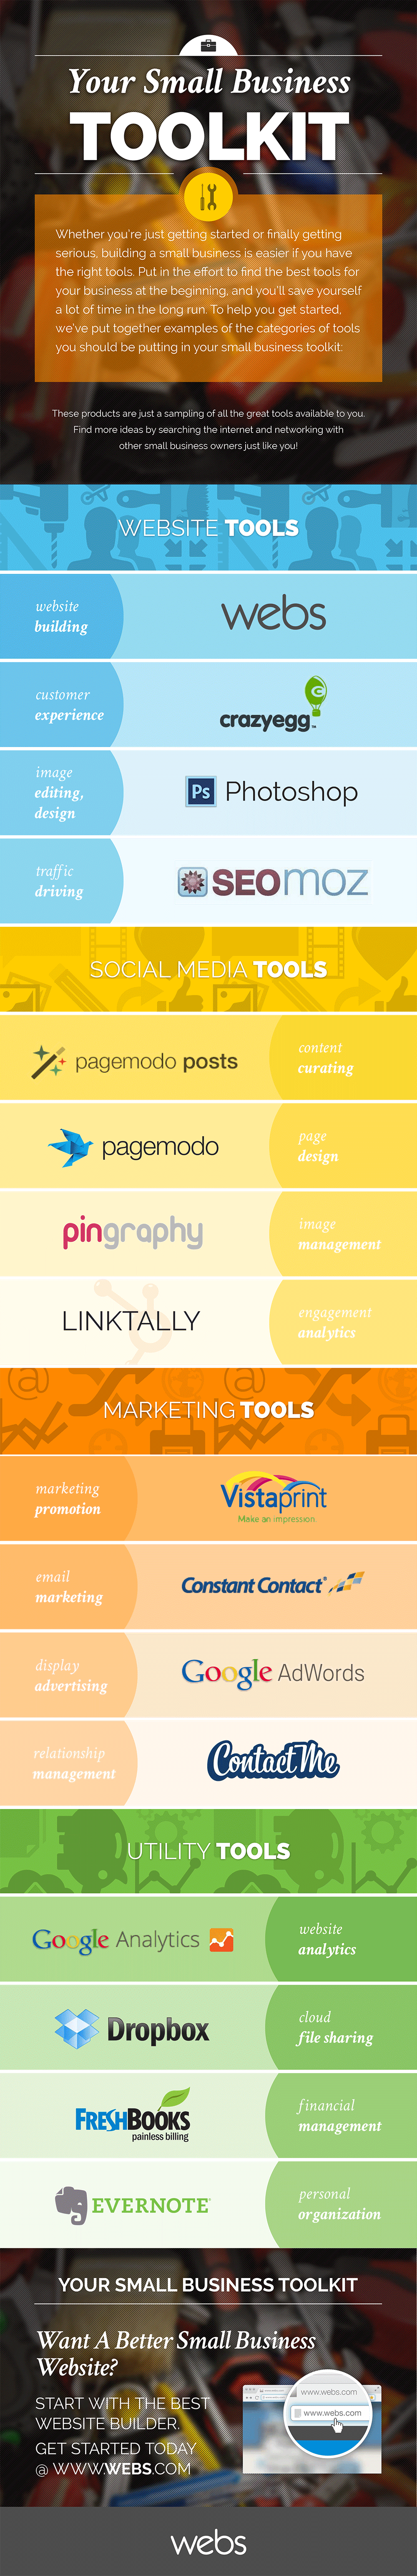 Small Business Toolkit. Building a small business is easier if you have the right tools.Here are categories of tools you should be putting in your small business toolkit. http://franchise.avenue.eu.com/